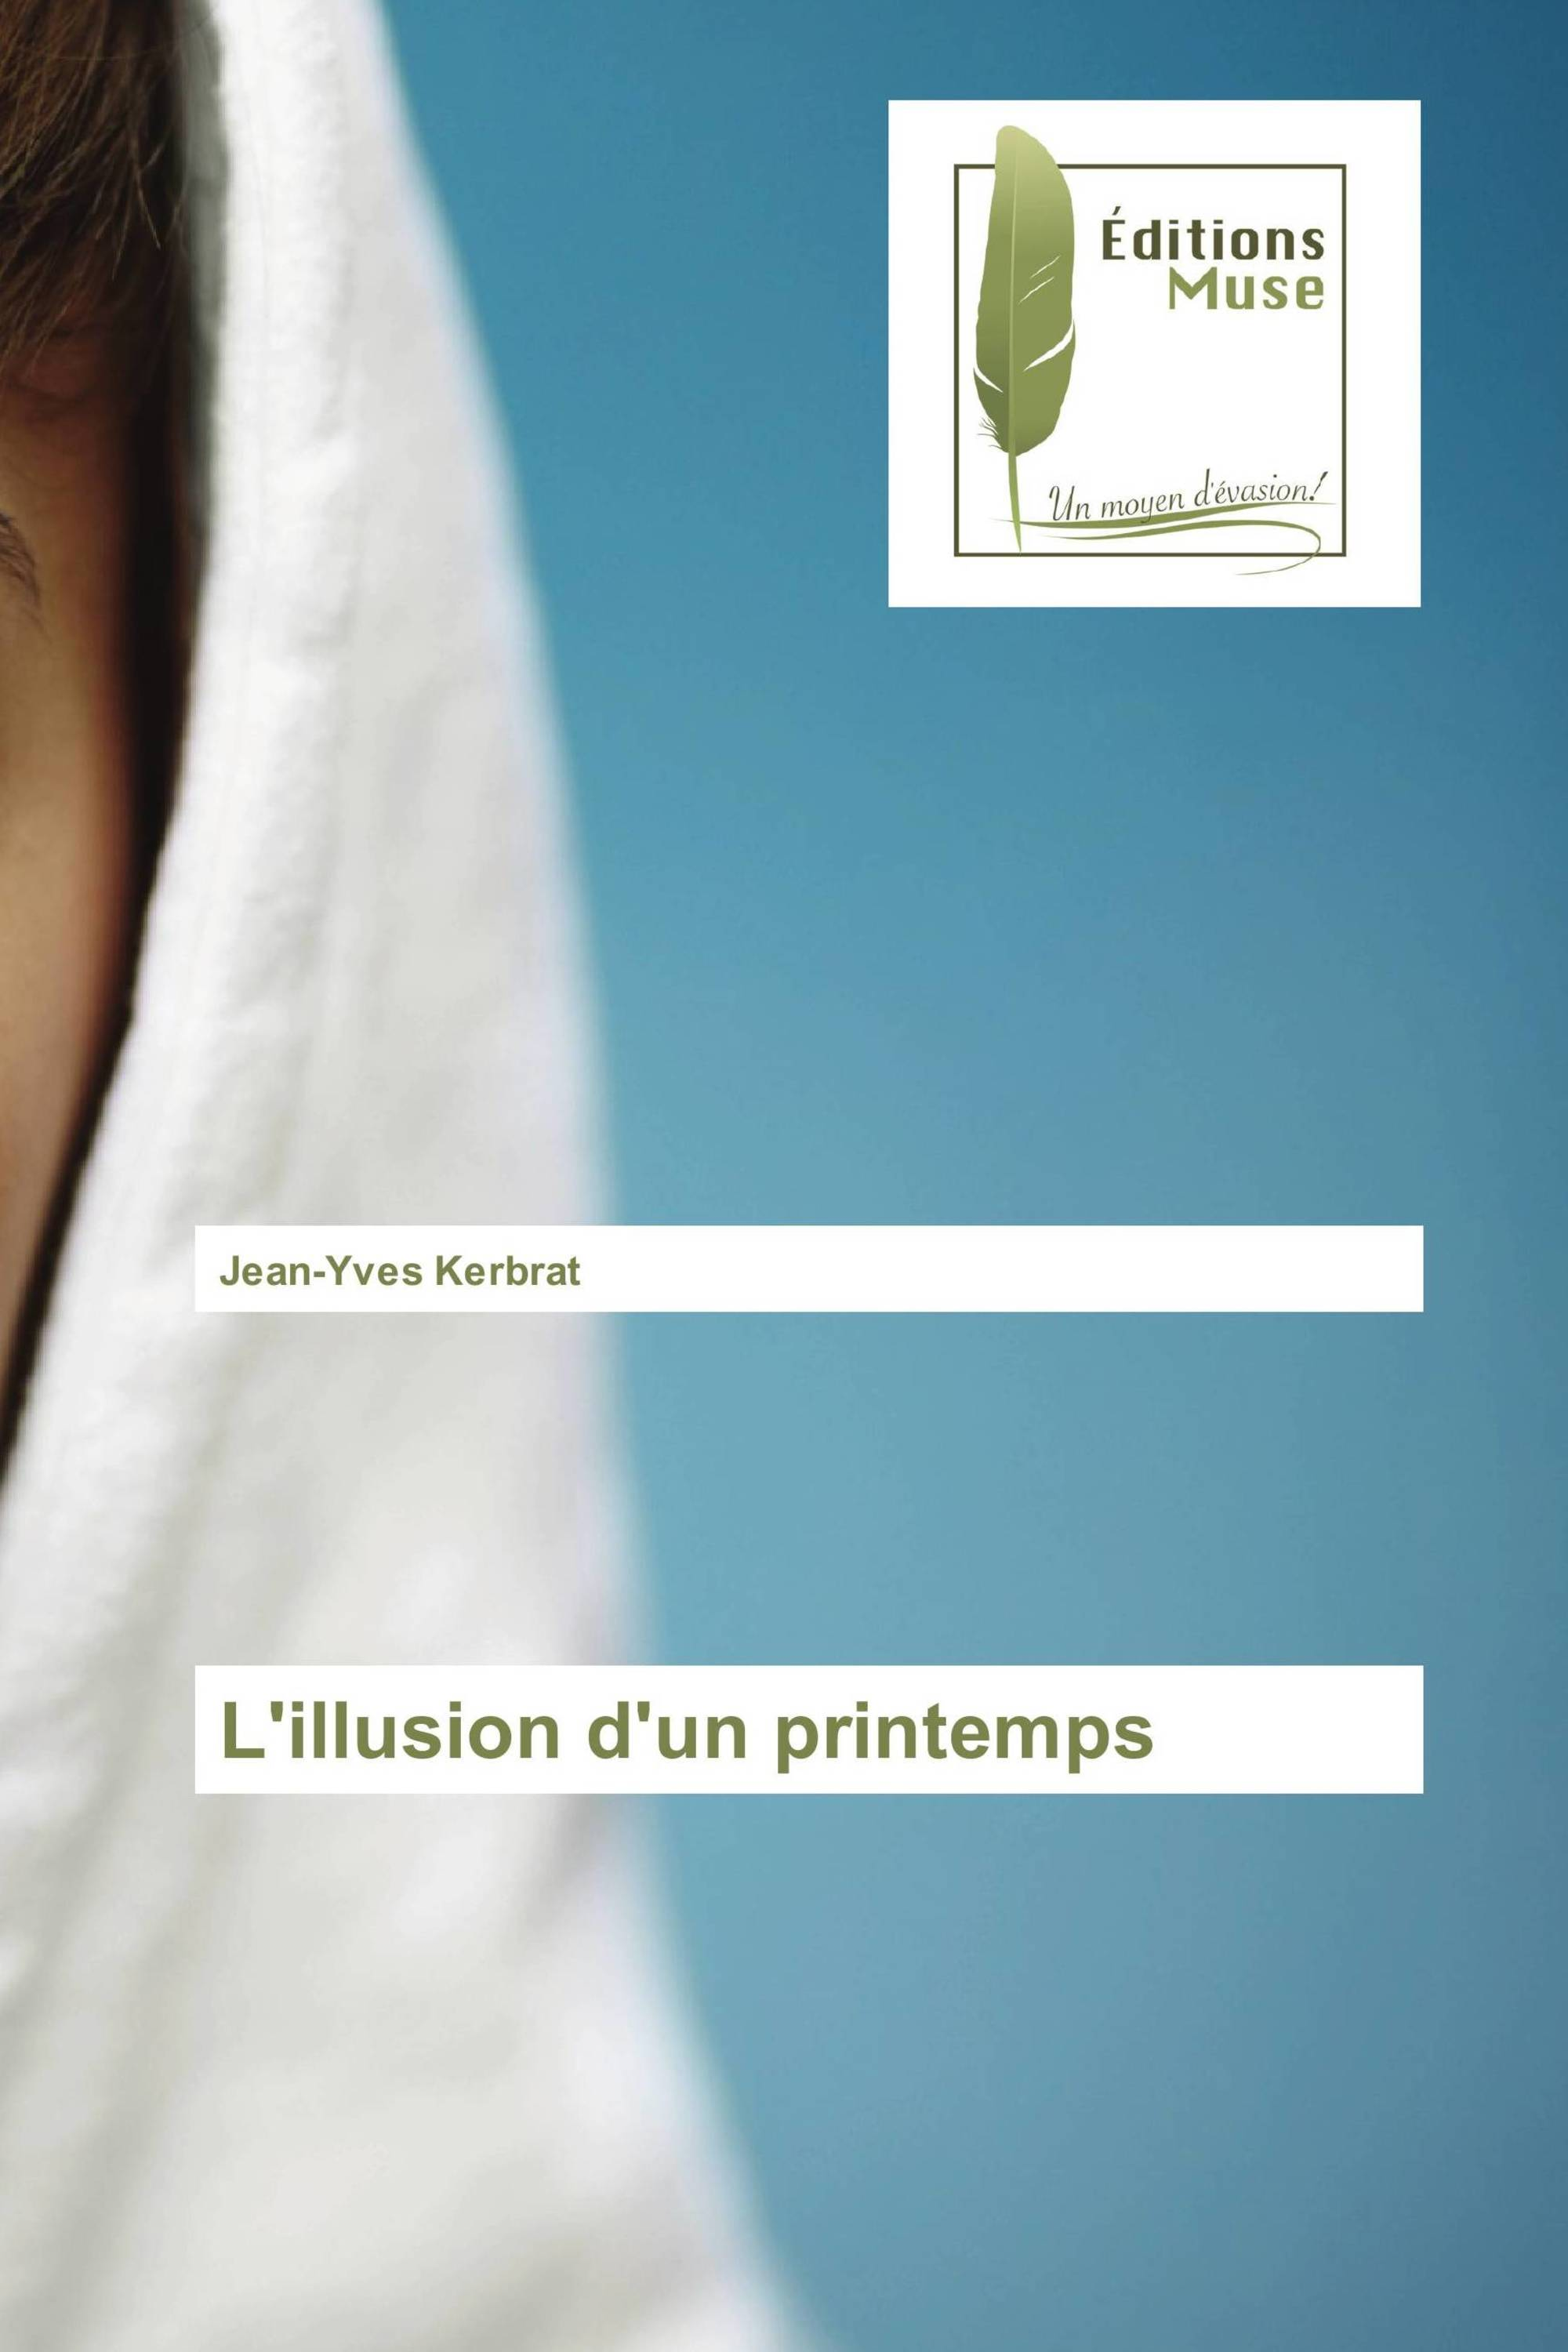 L'illusion d'un printemps